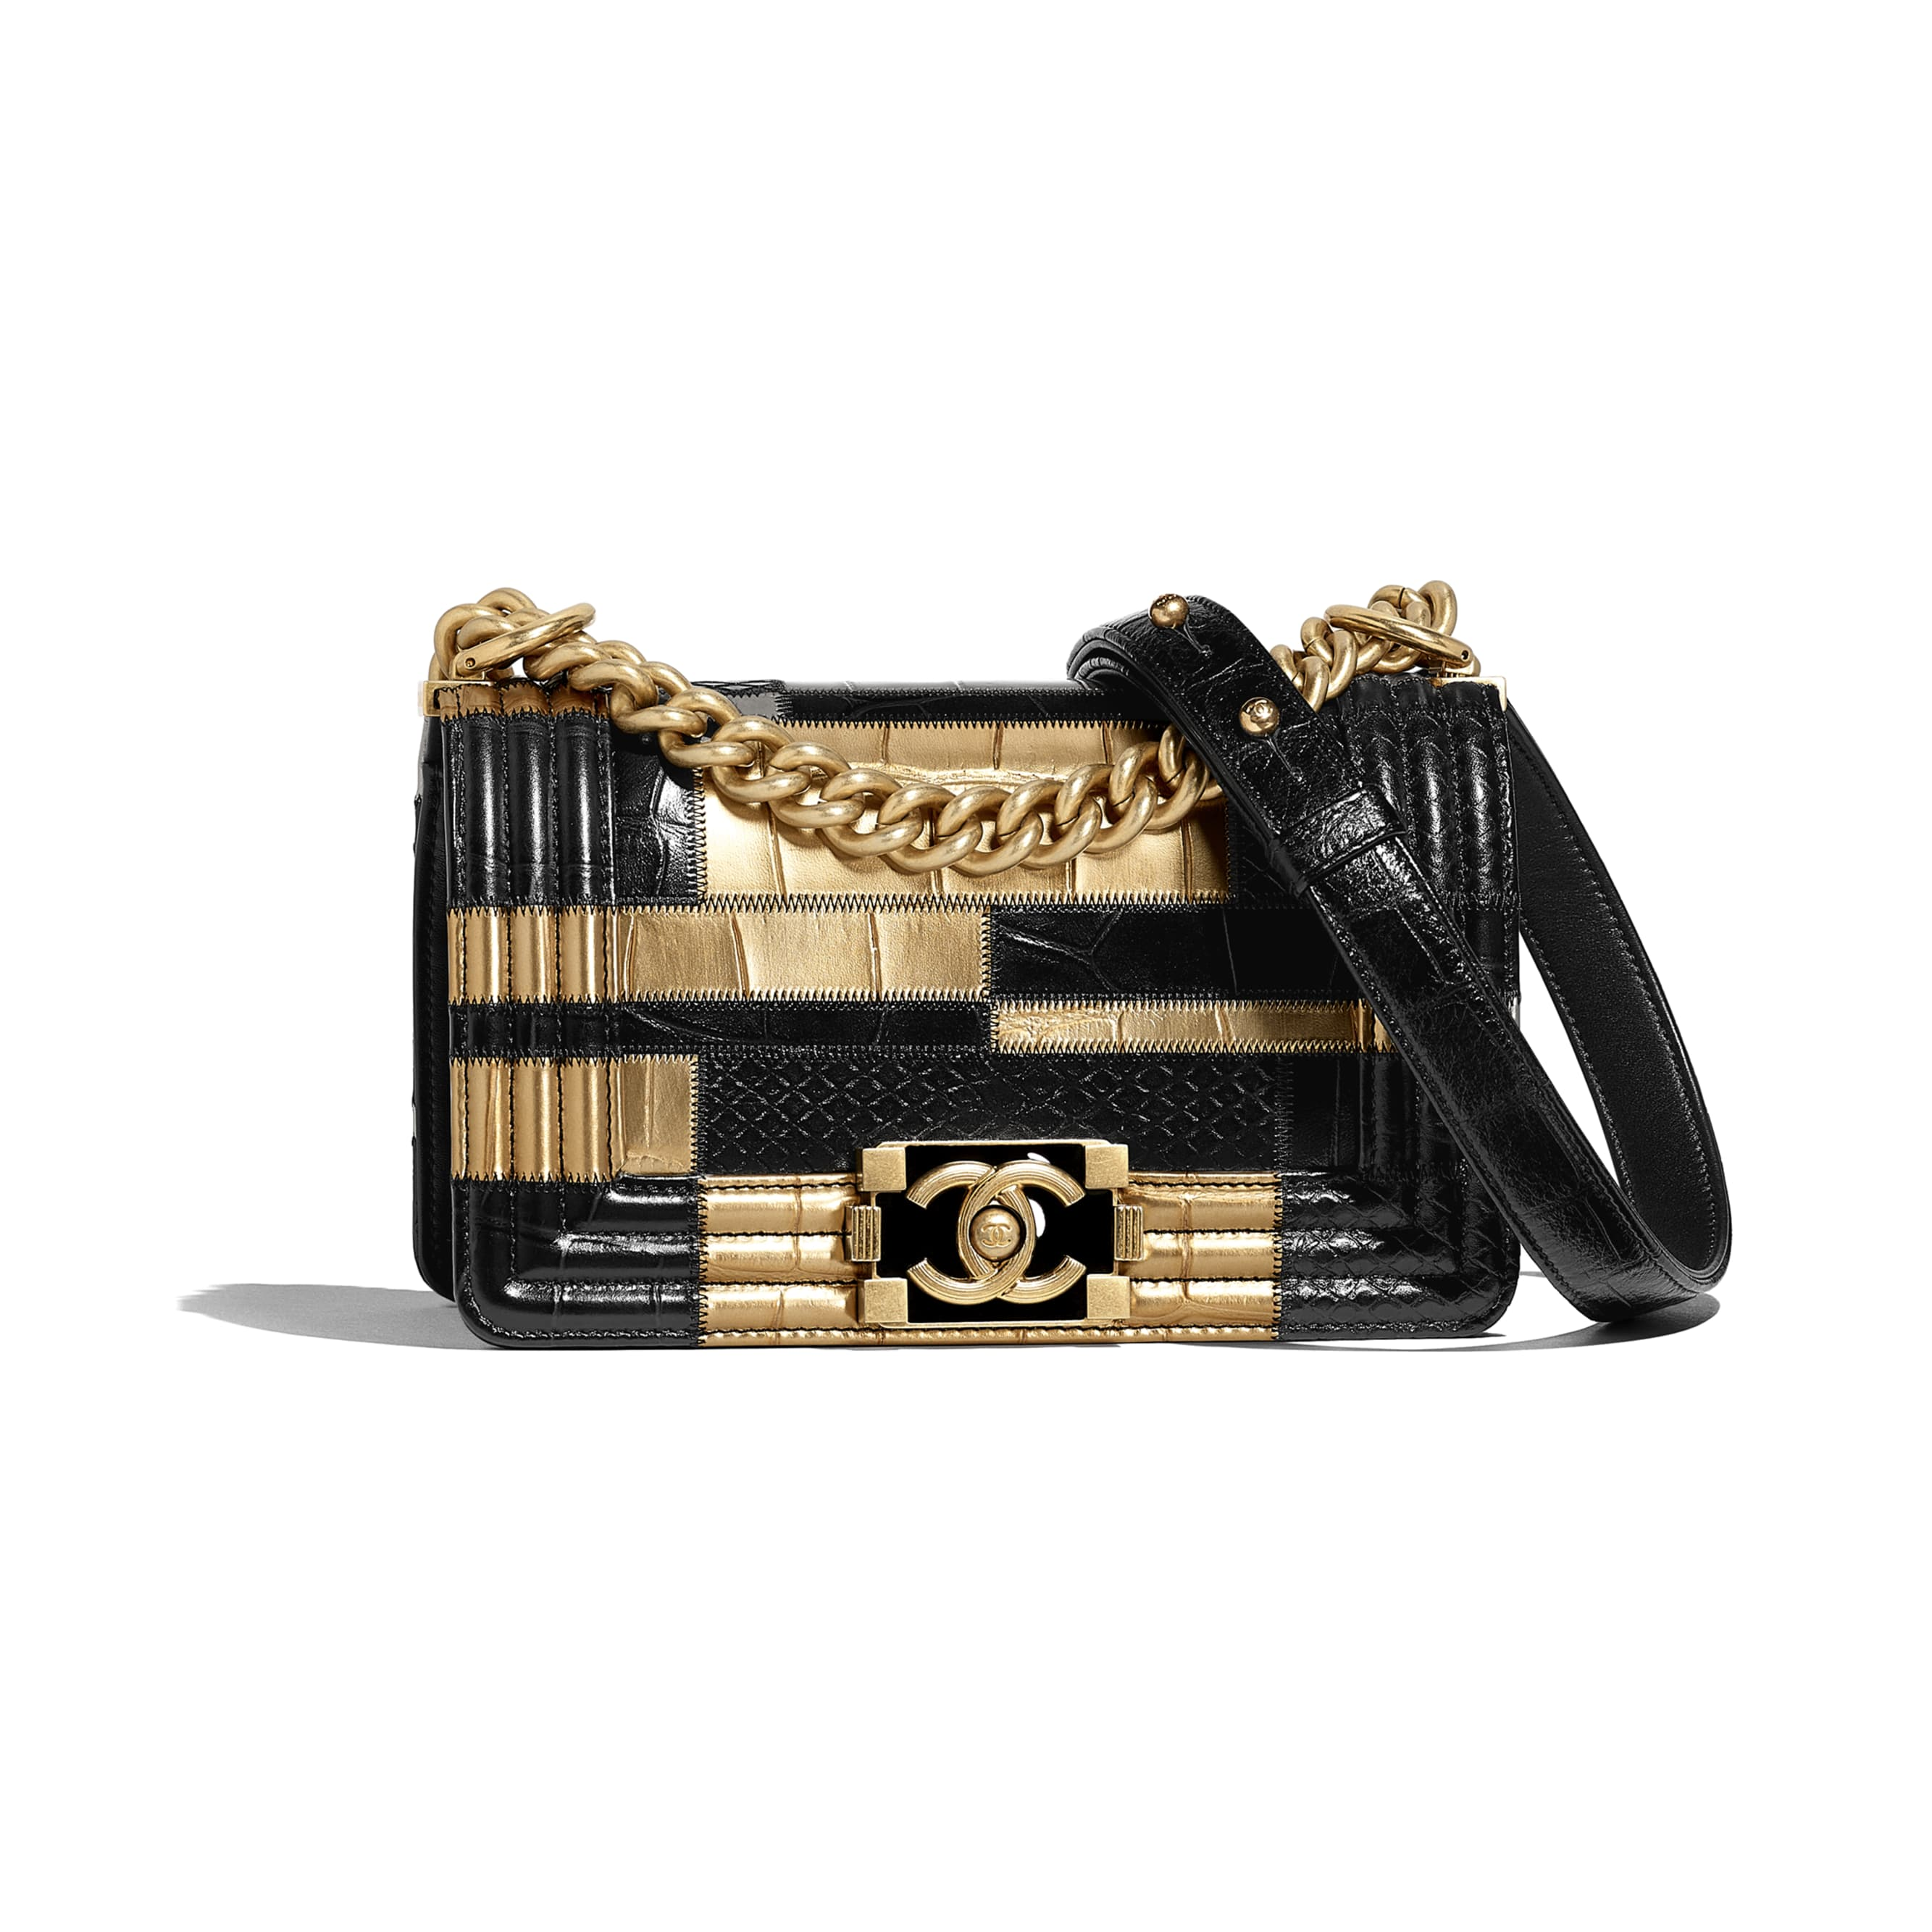 Small BOY CHANEL Handbag - Black & Gold - Crocodile Embossed Calfskin, Python Embossed Calfskin & Gold-Tone Metal - Default view - see standard sized version